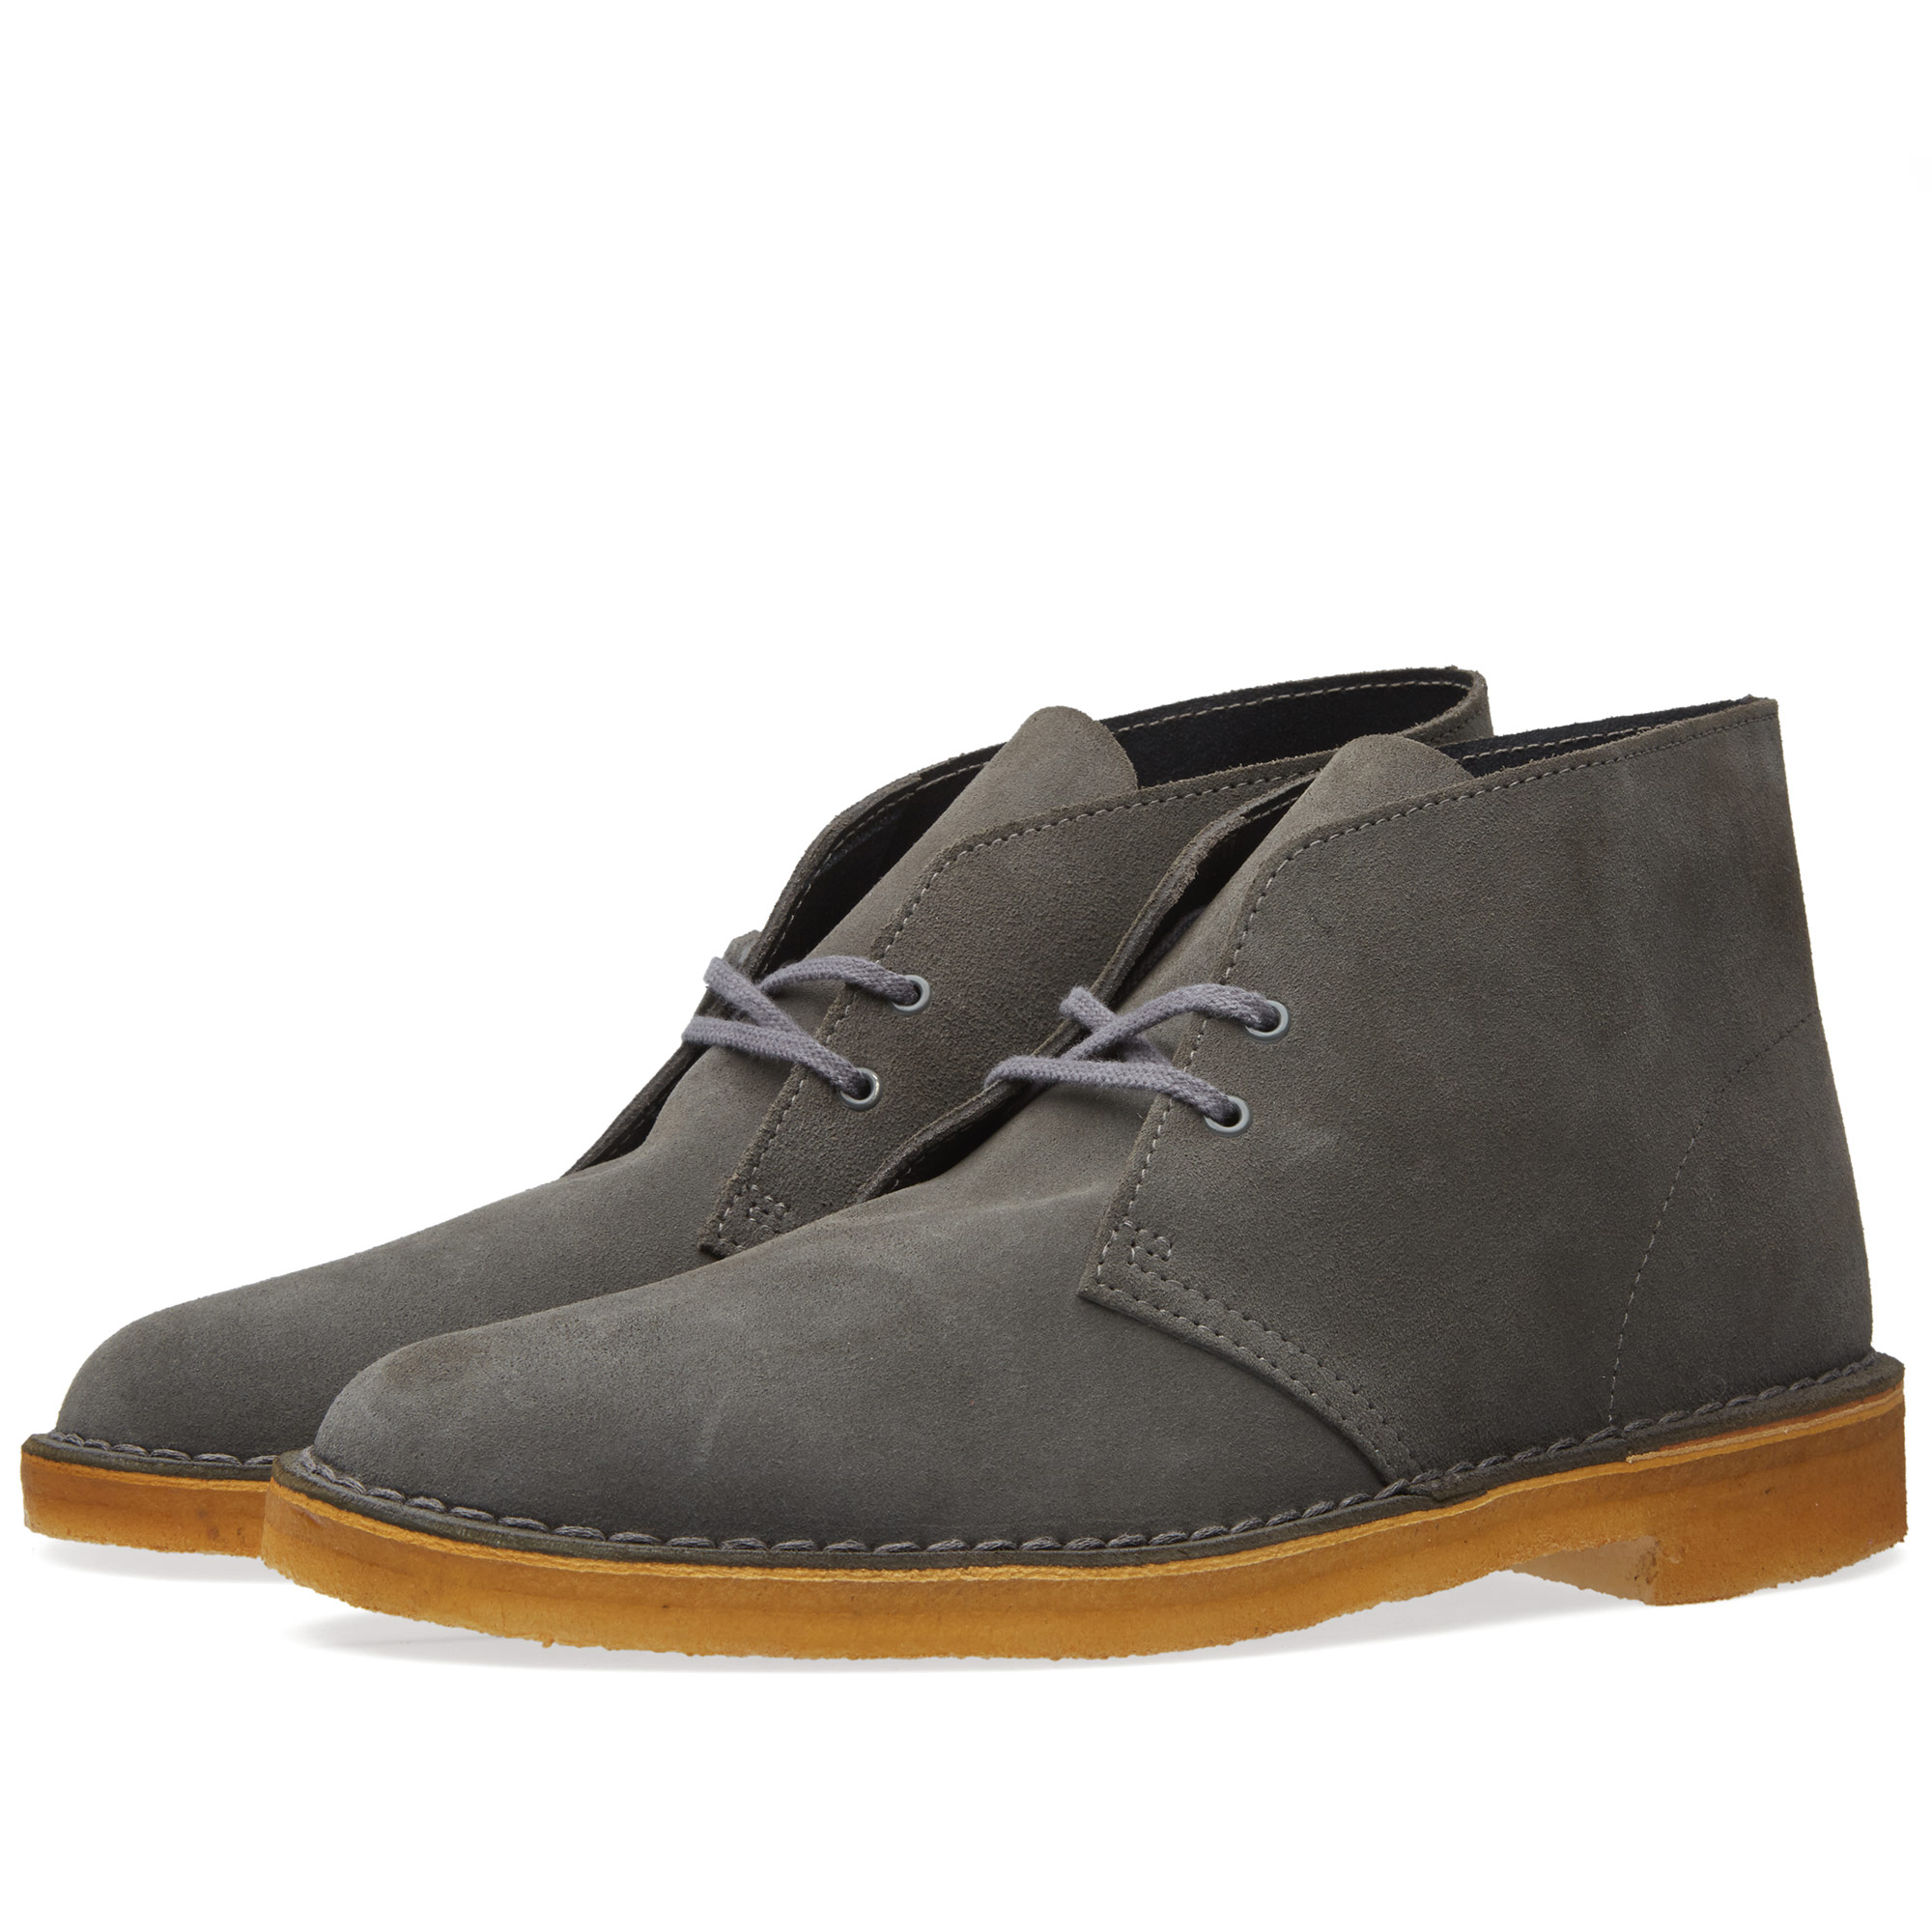 clarks originals desert boot grey suede. Black Bedroom Furniture Sets. Home Design Ideas